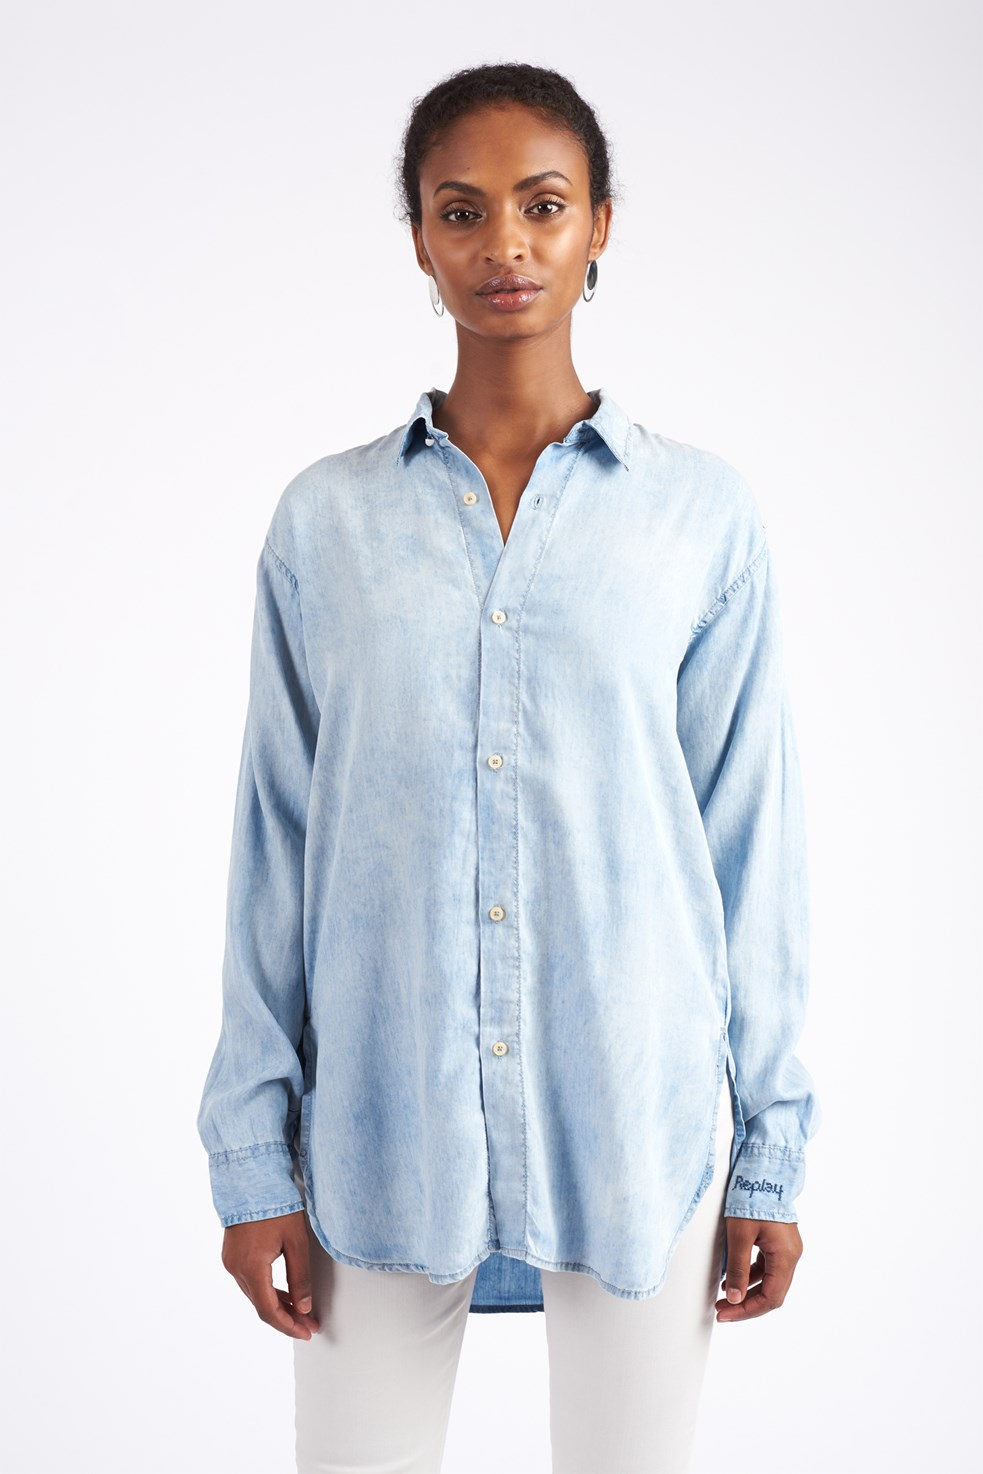 a8bf53204651 ... Replay Shirt DENIM Model front ...